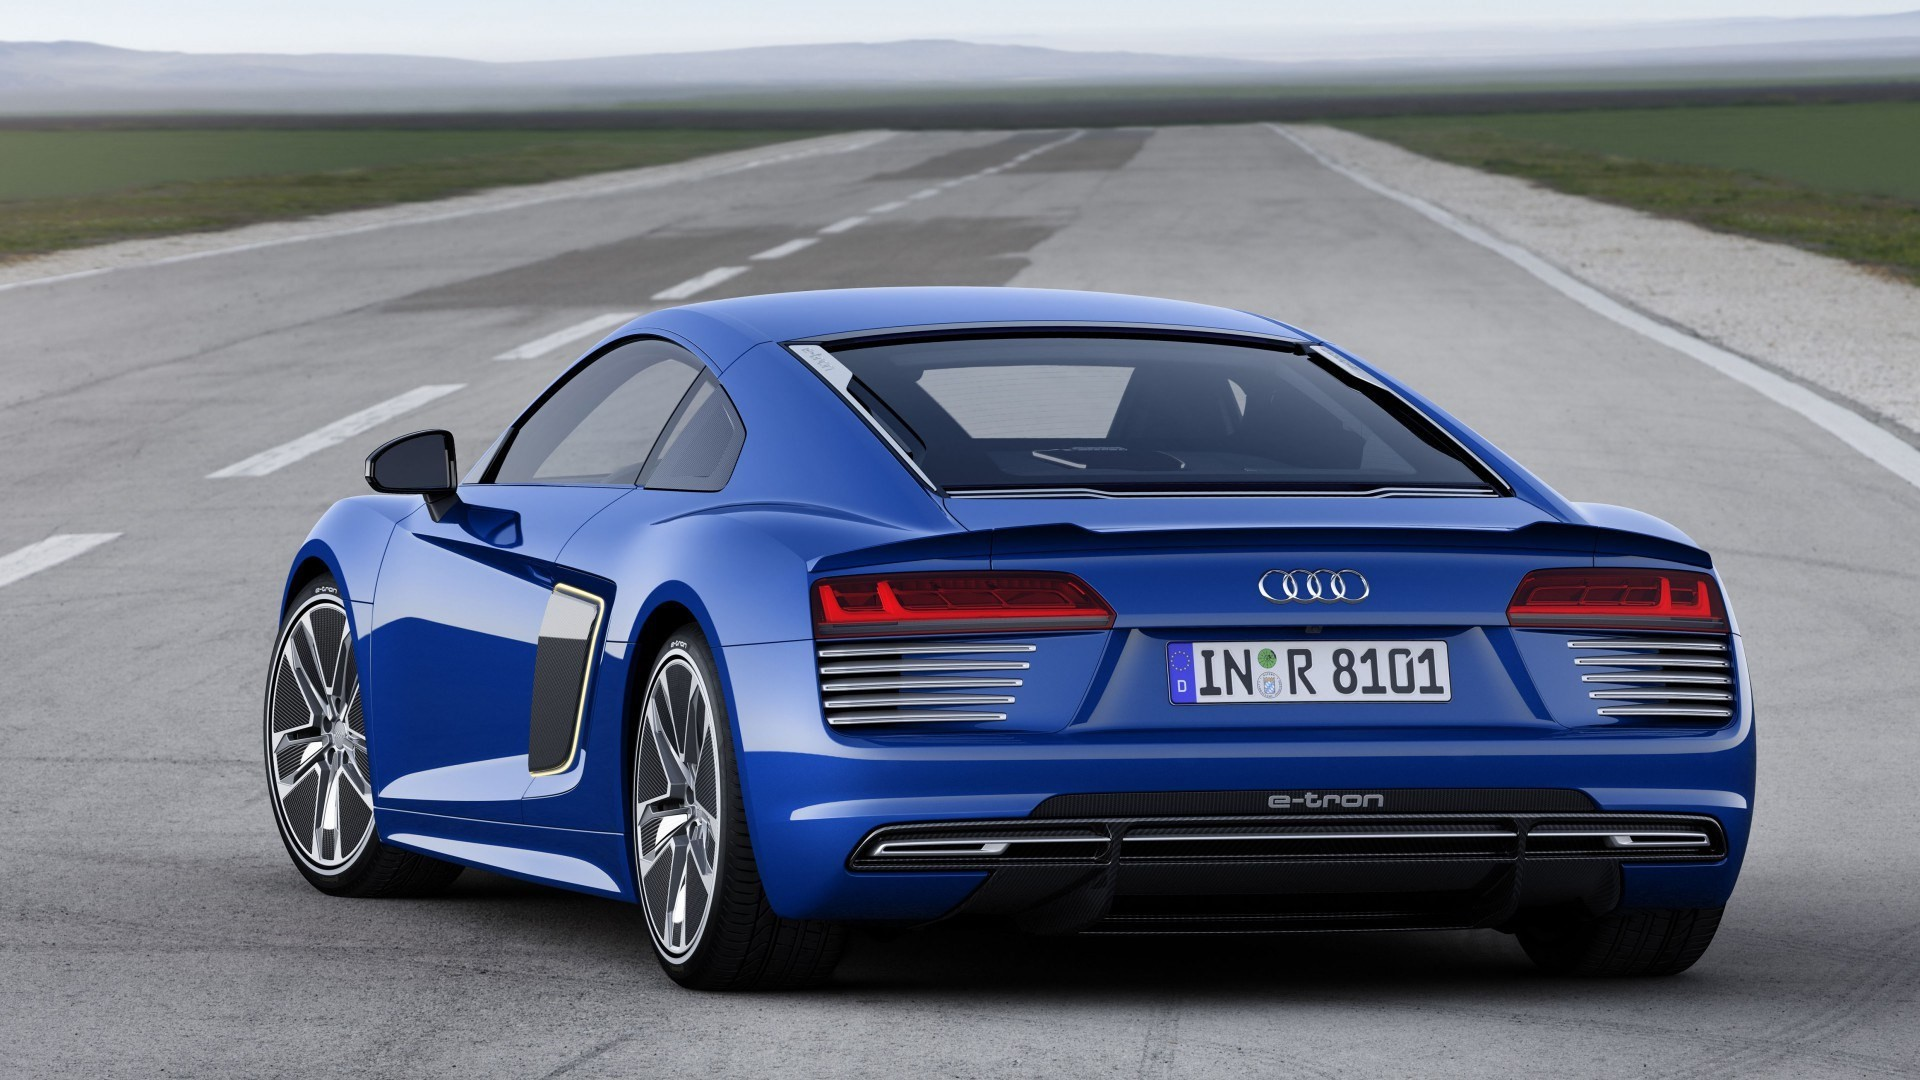 1920x1080 Audi R8 Desktop Nexus Wallpaper